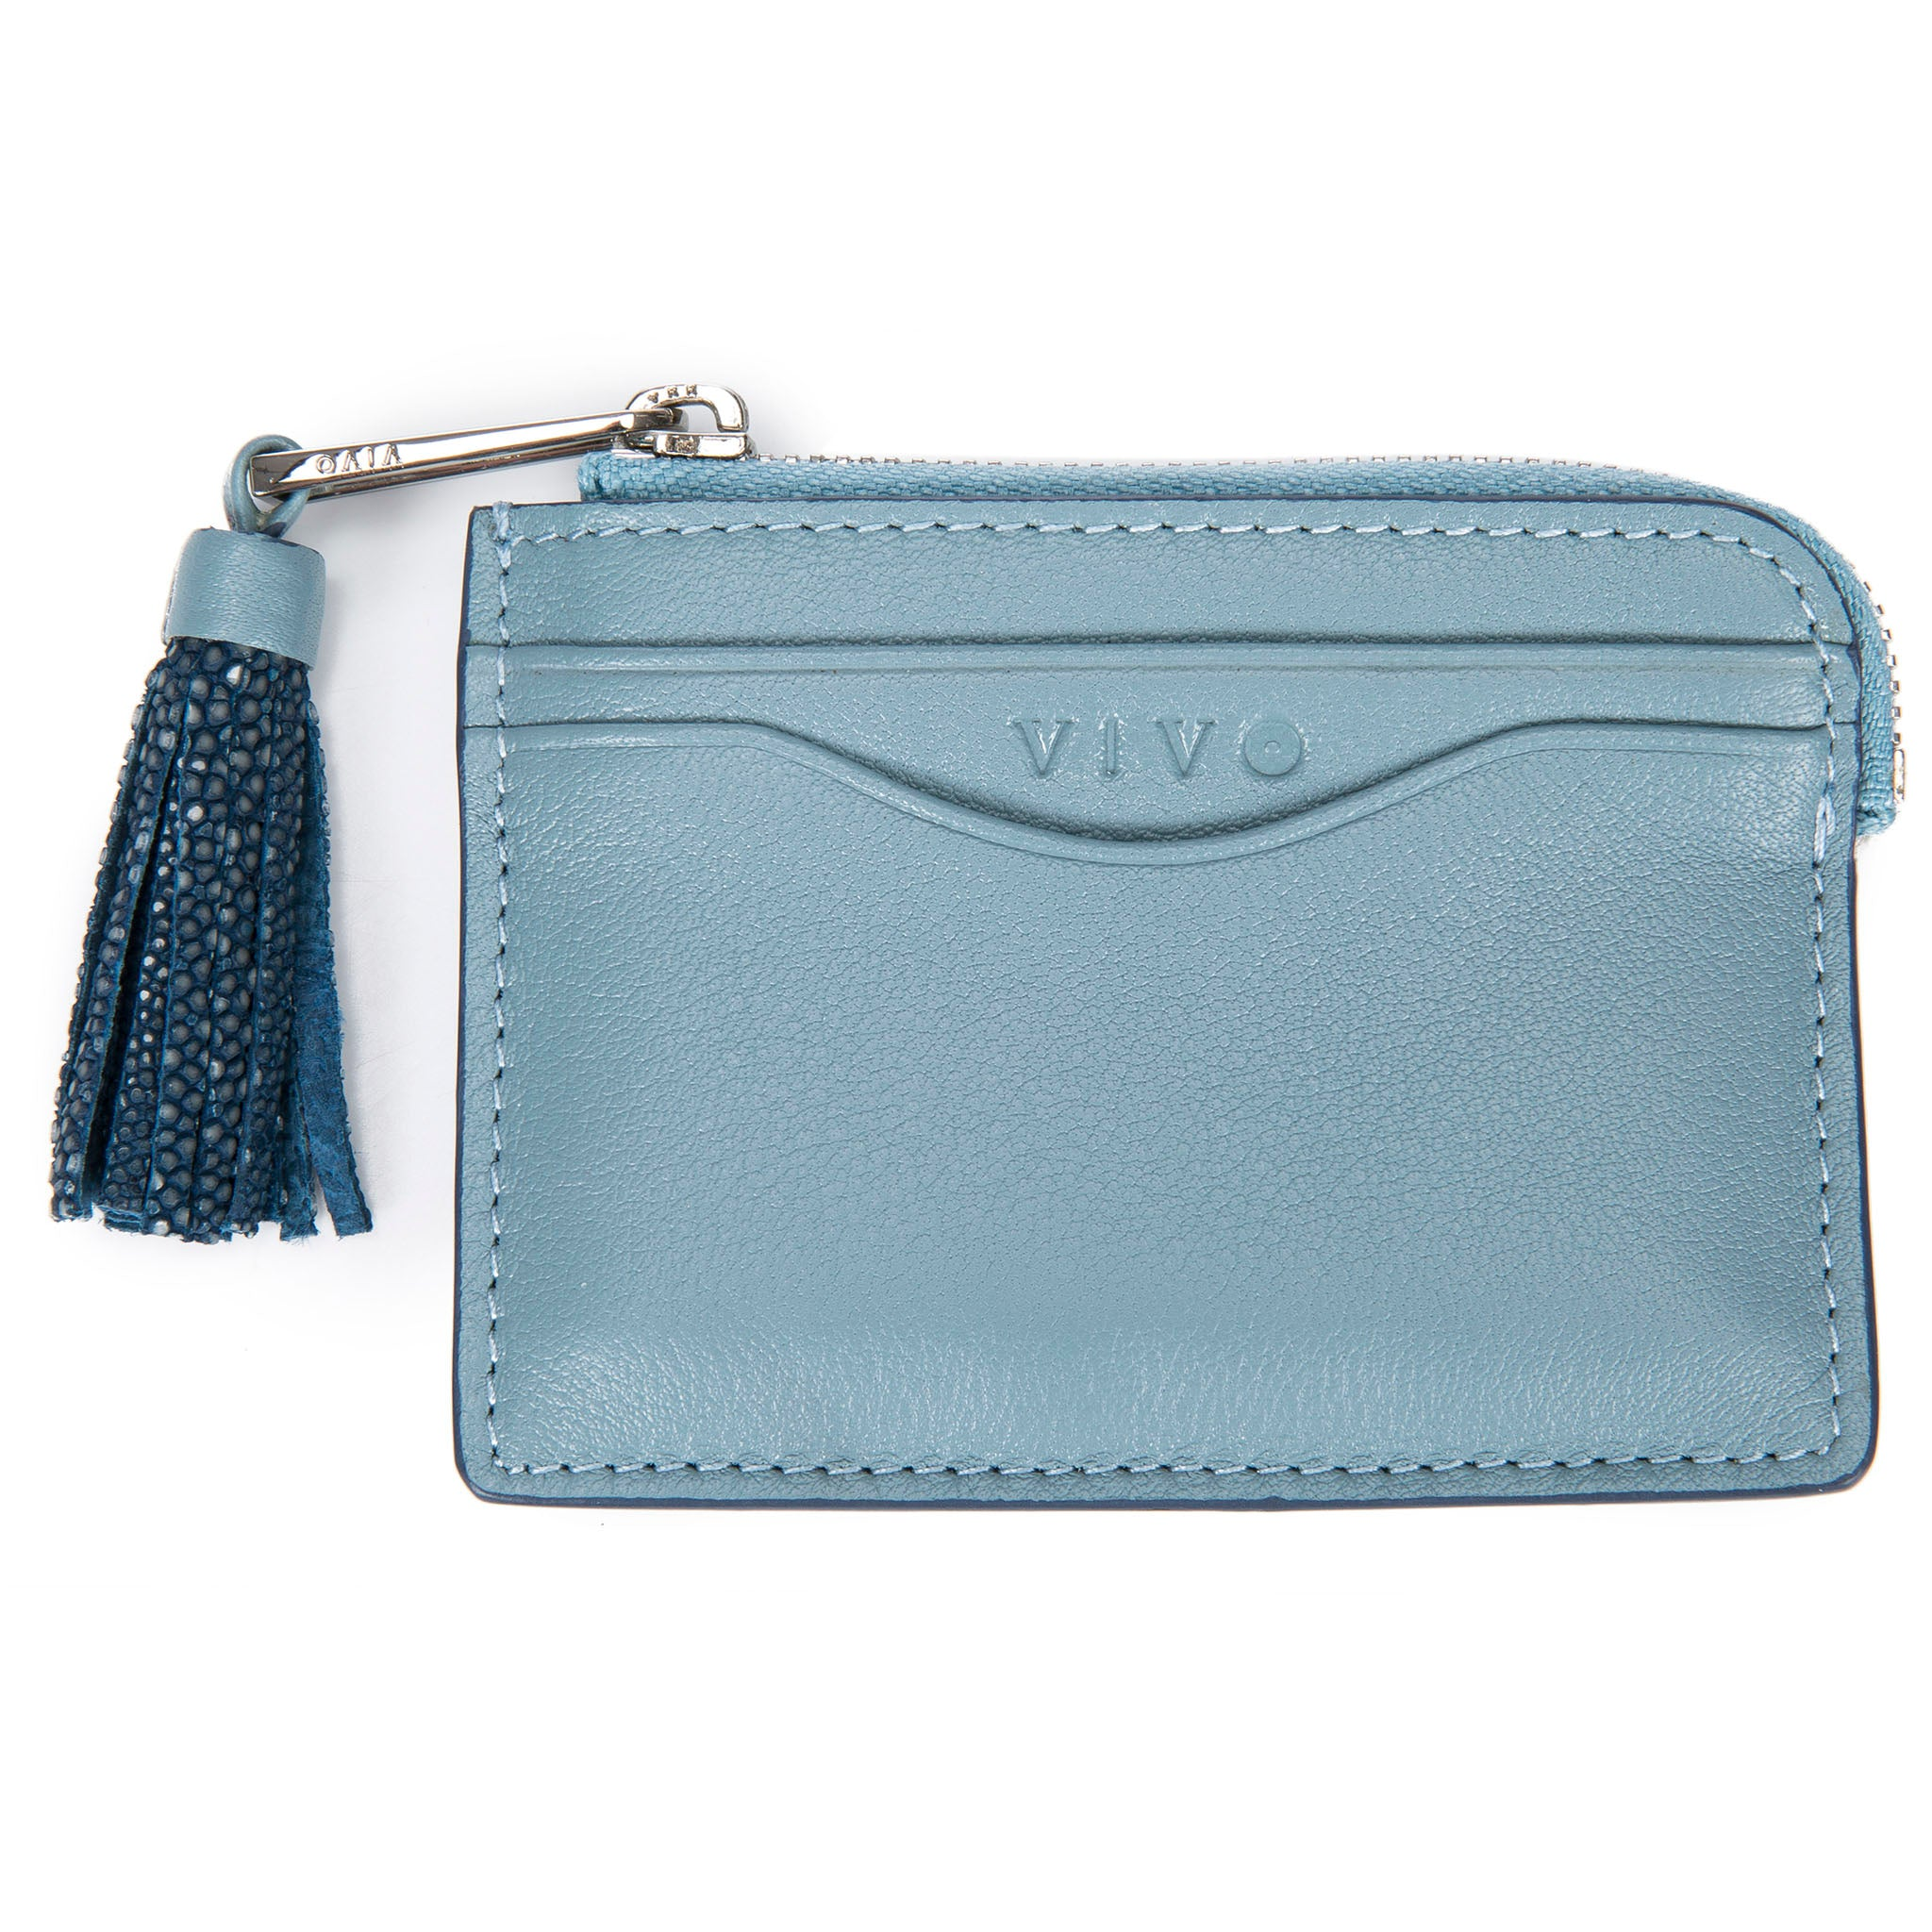 Light Blue Leather Zipper Card Or Coin Case With Shagreen Tassel Pull Front View Avery - Vivo Direct